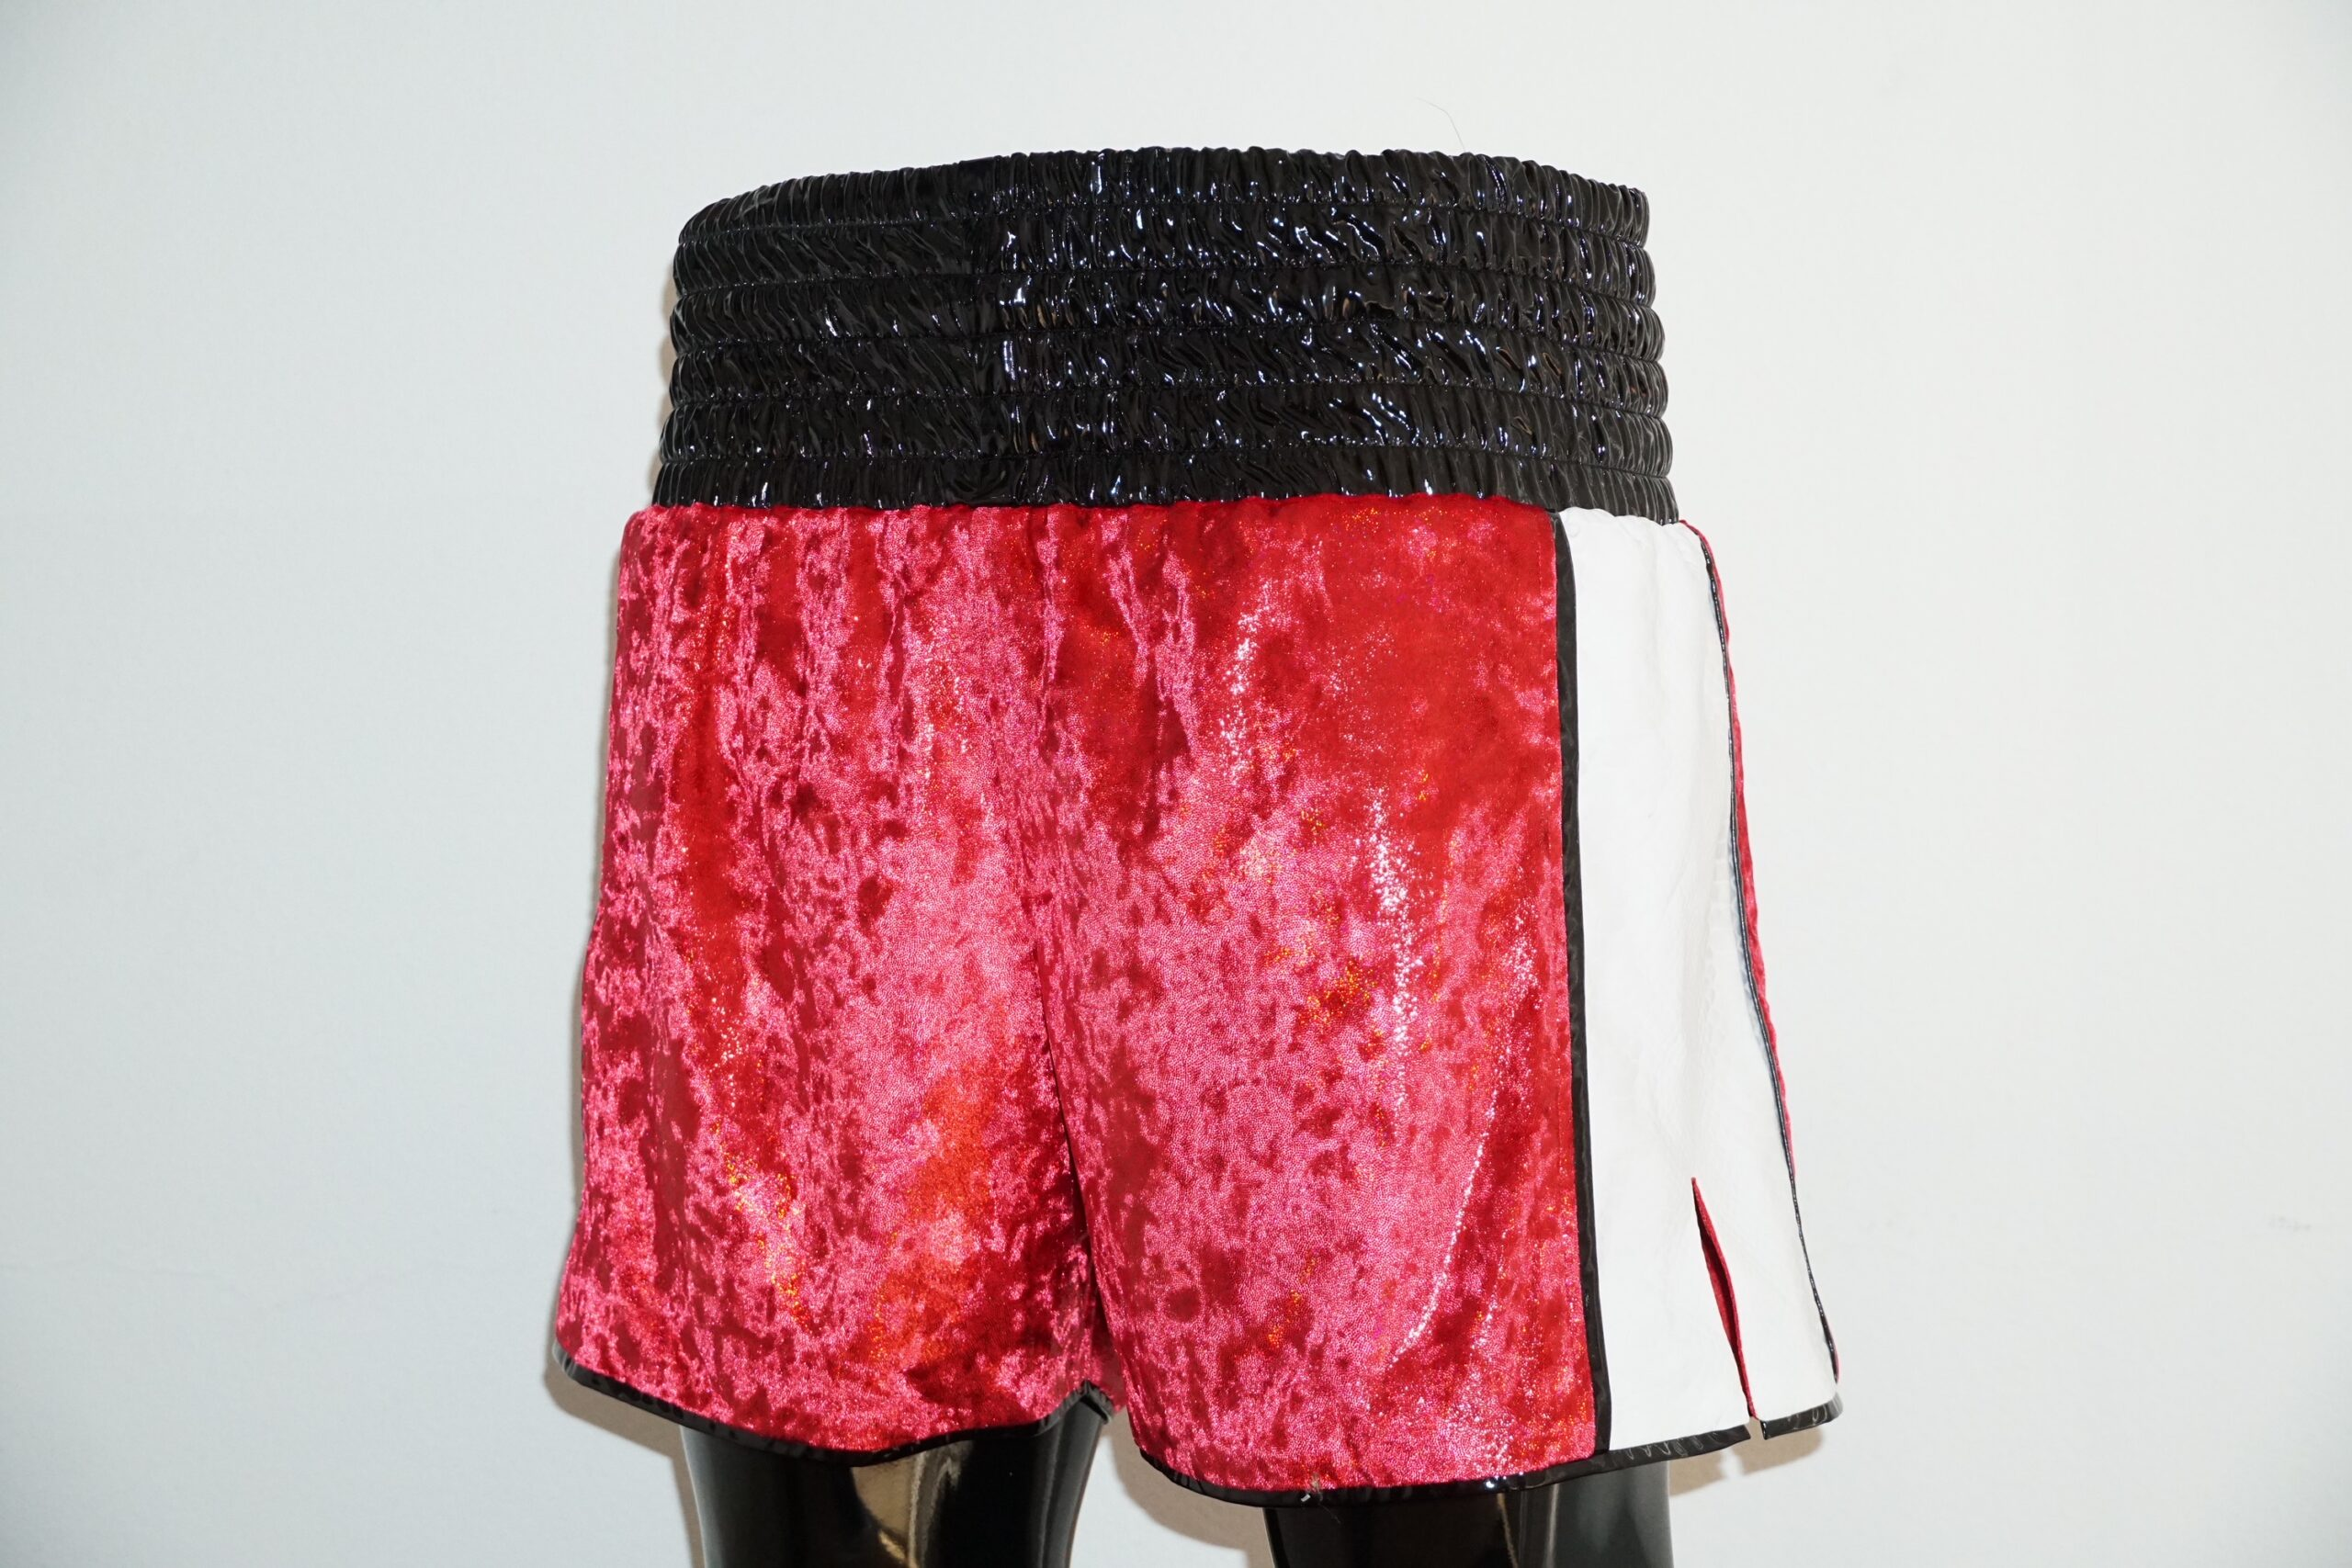 Custom made red / white boxing shorts ready to sell.